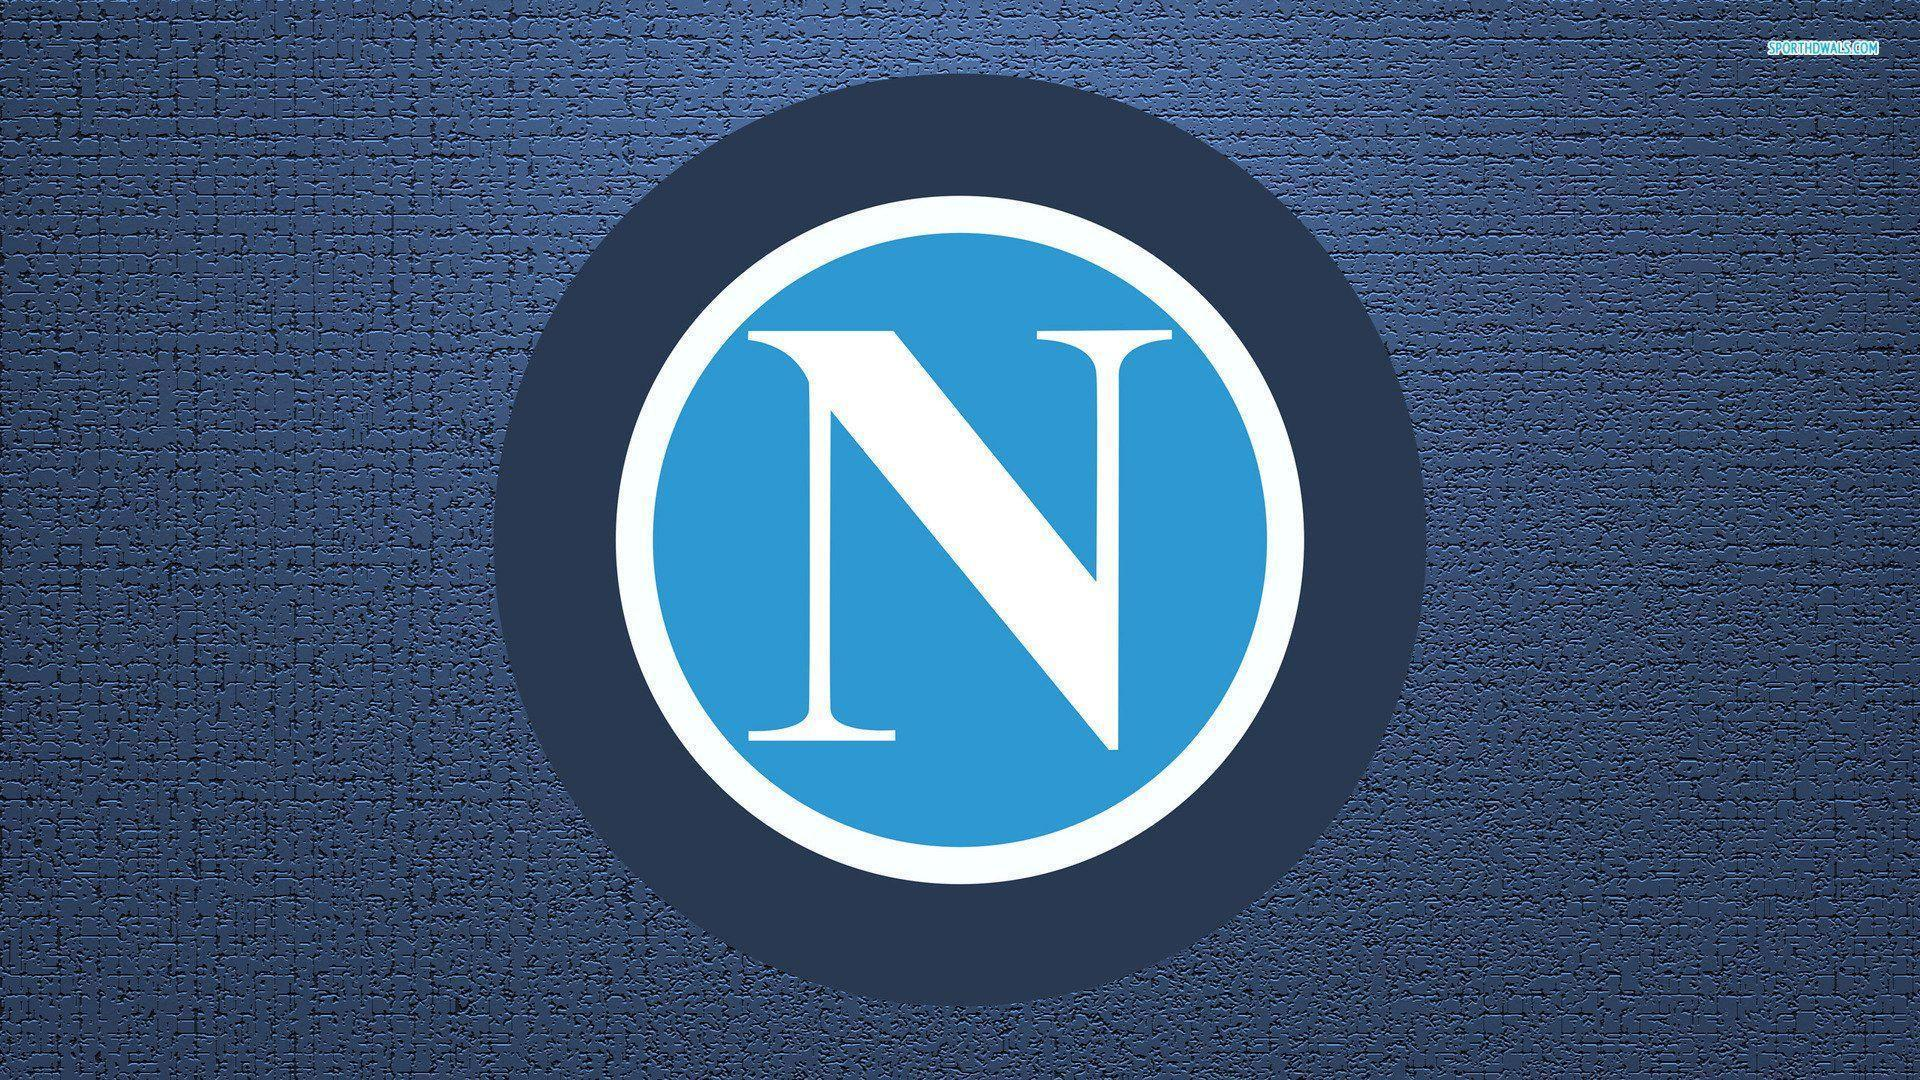 Napoli Calcio Sfondi Wallpapers 213737